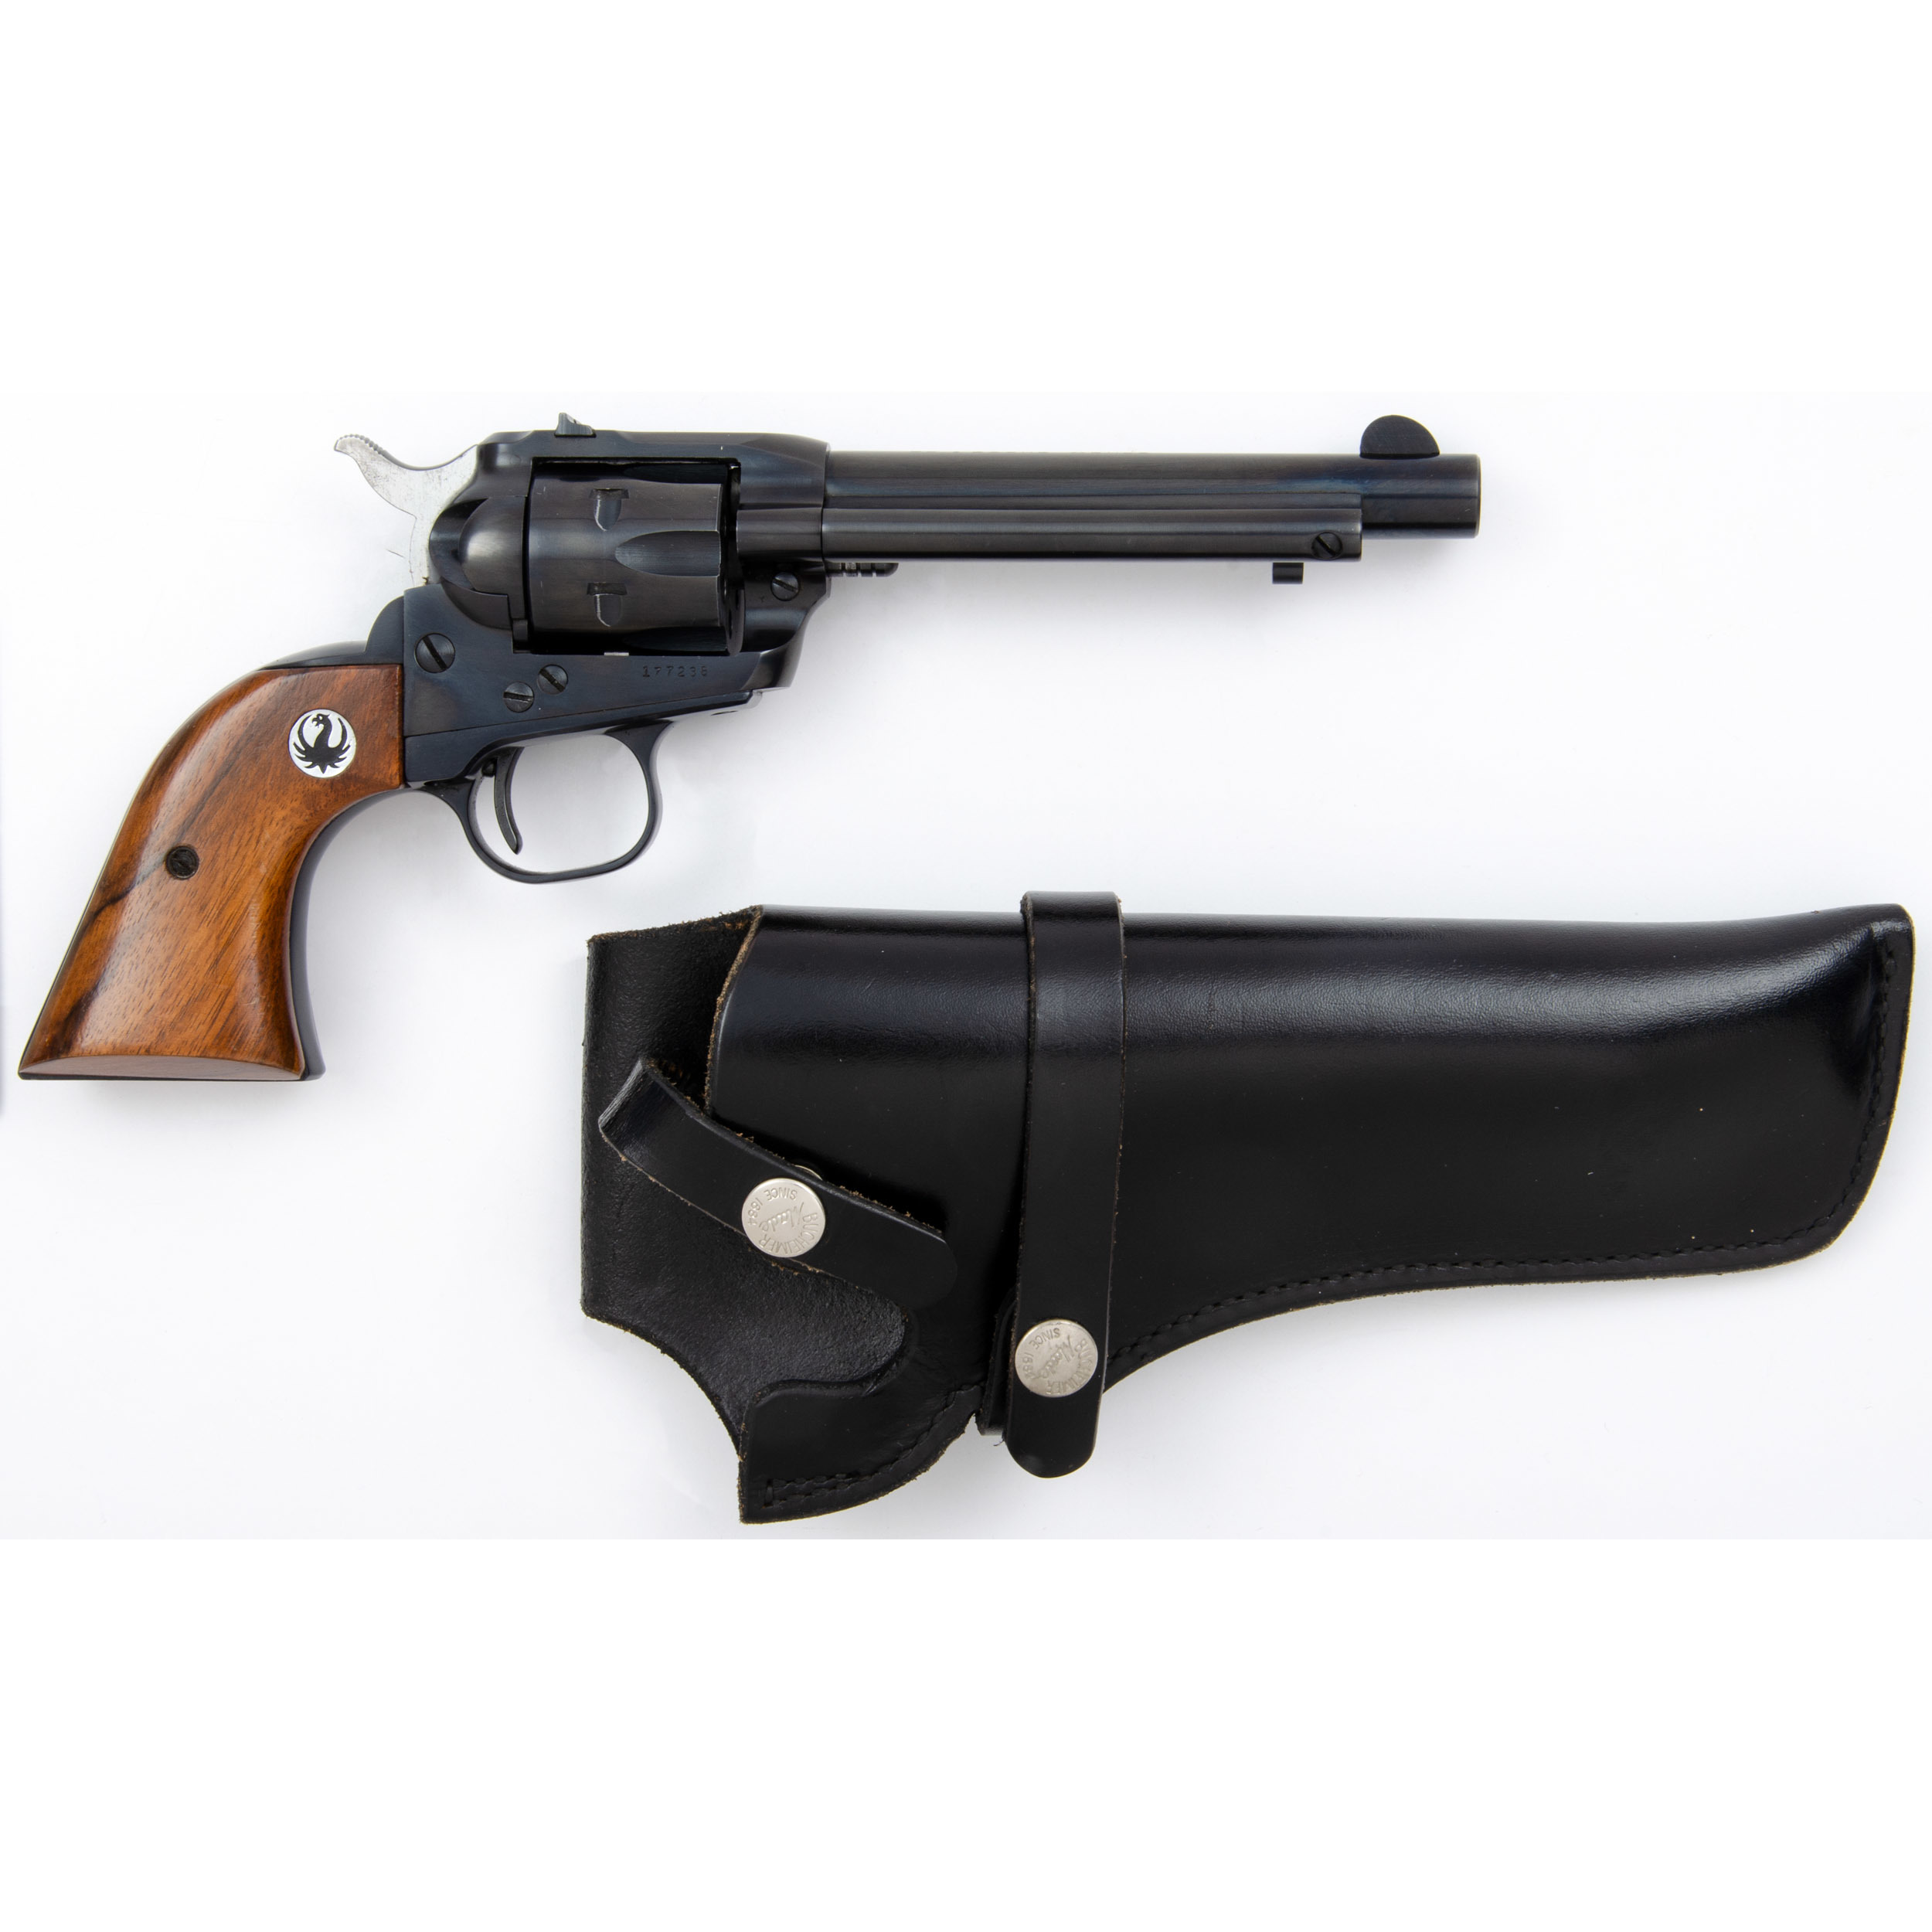 Ruger Single-Six Revolver with Leather Holster | Cowan's Auction